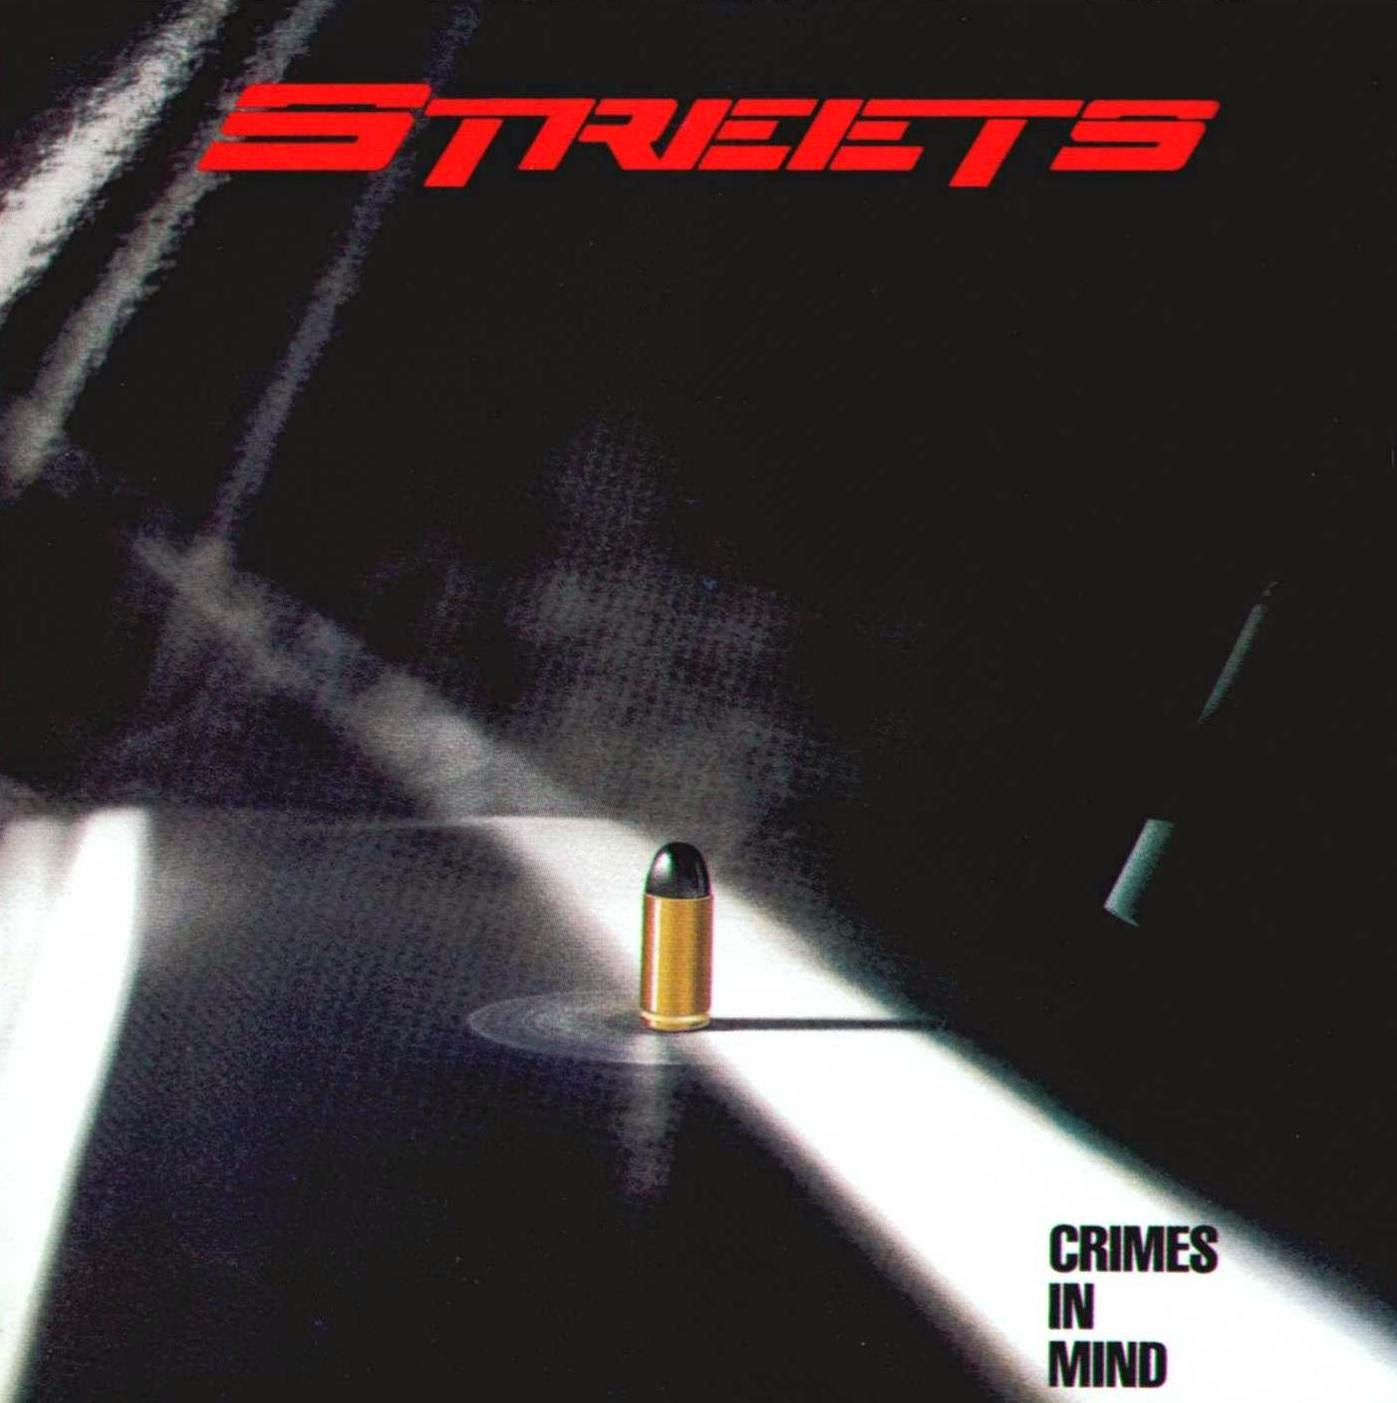 Streets Crimes in mind 1985